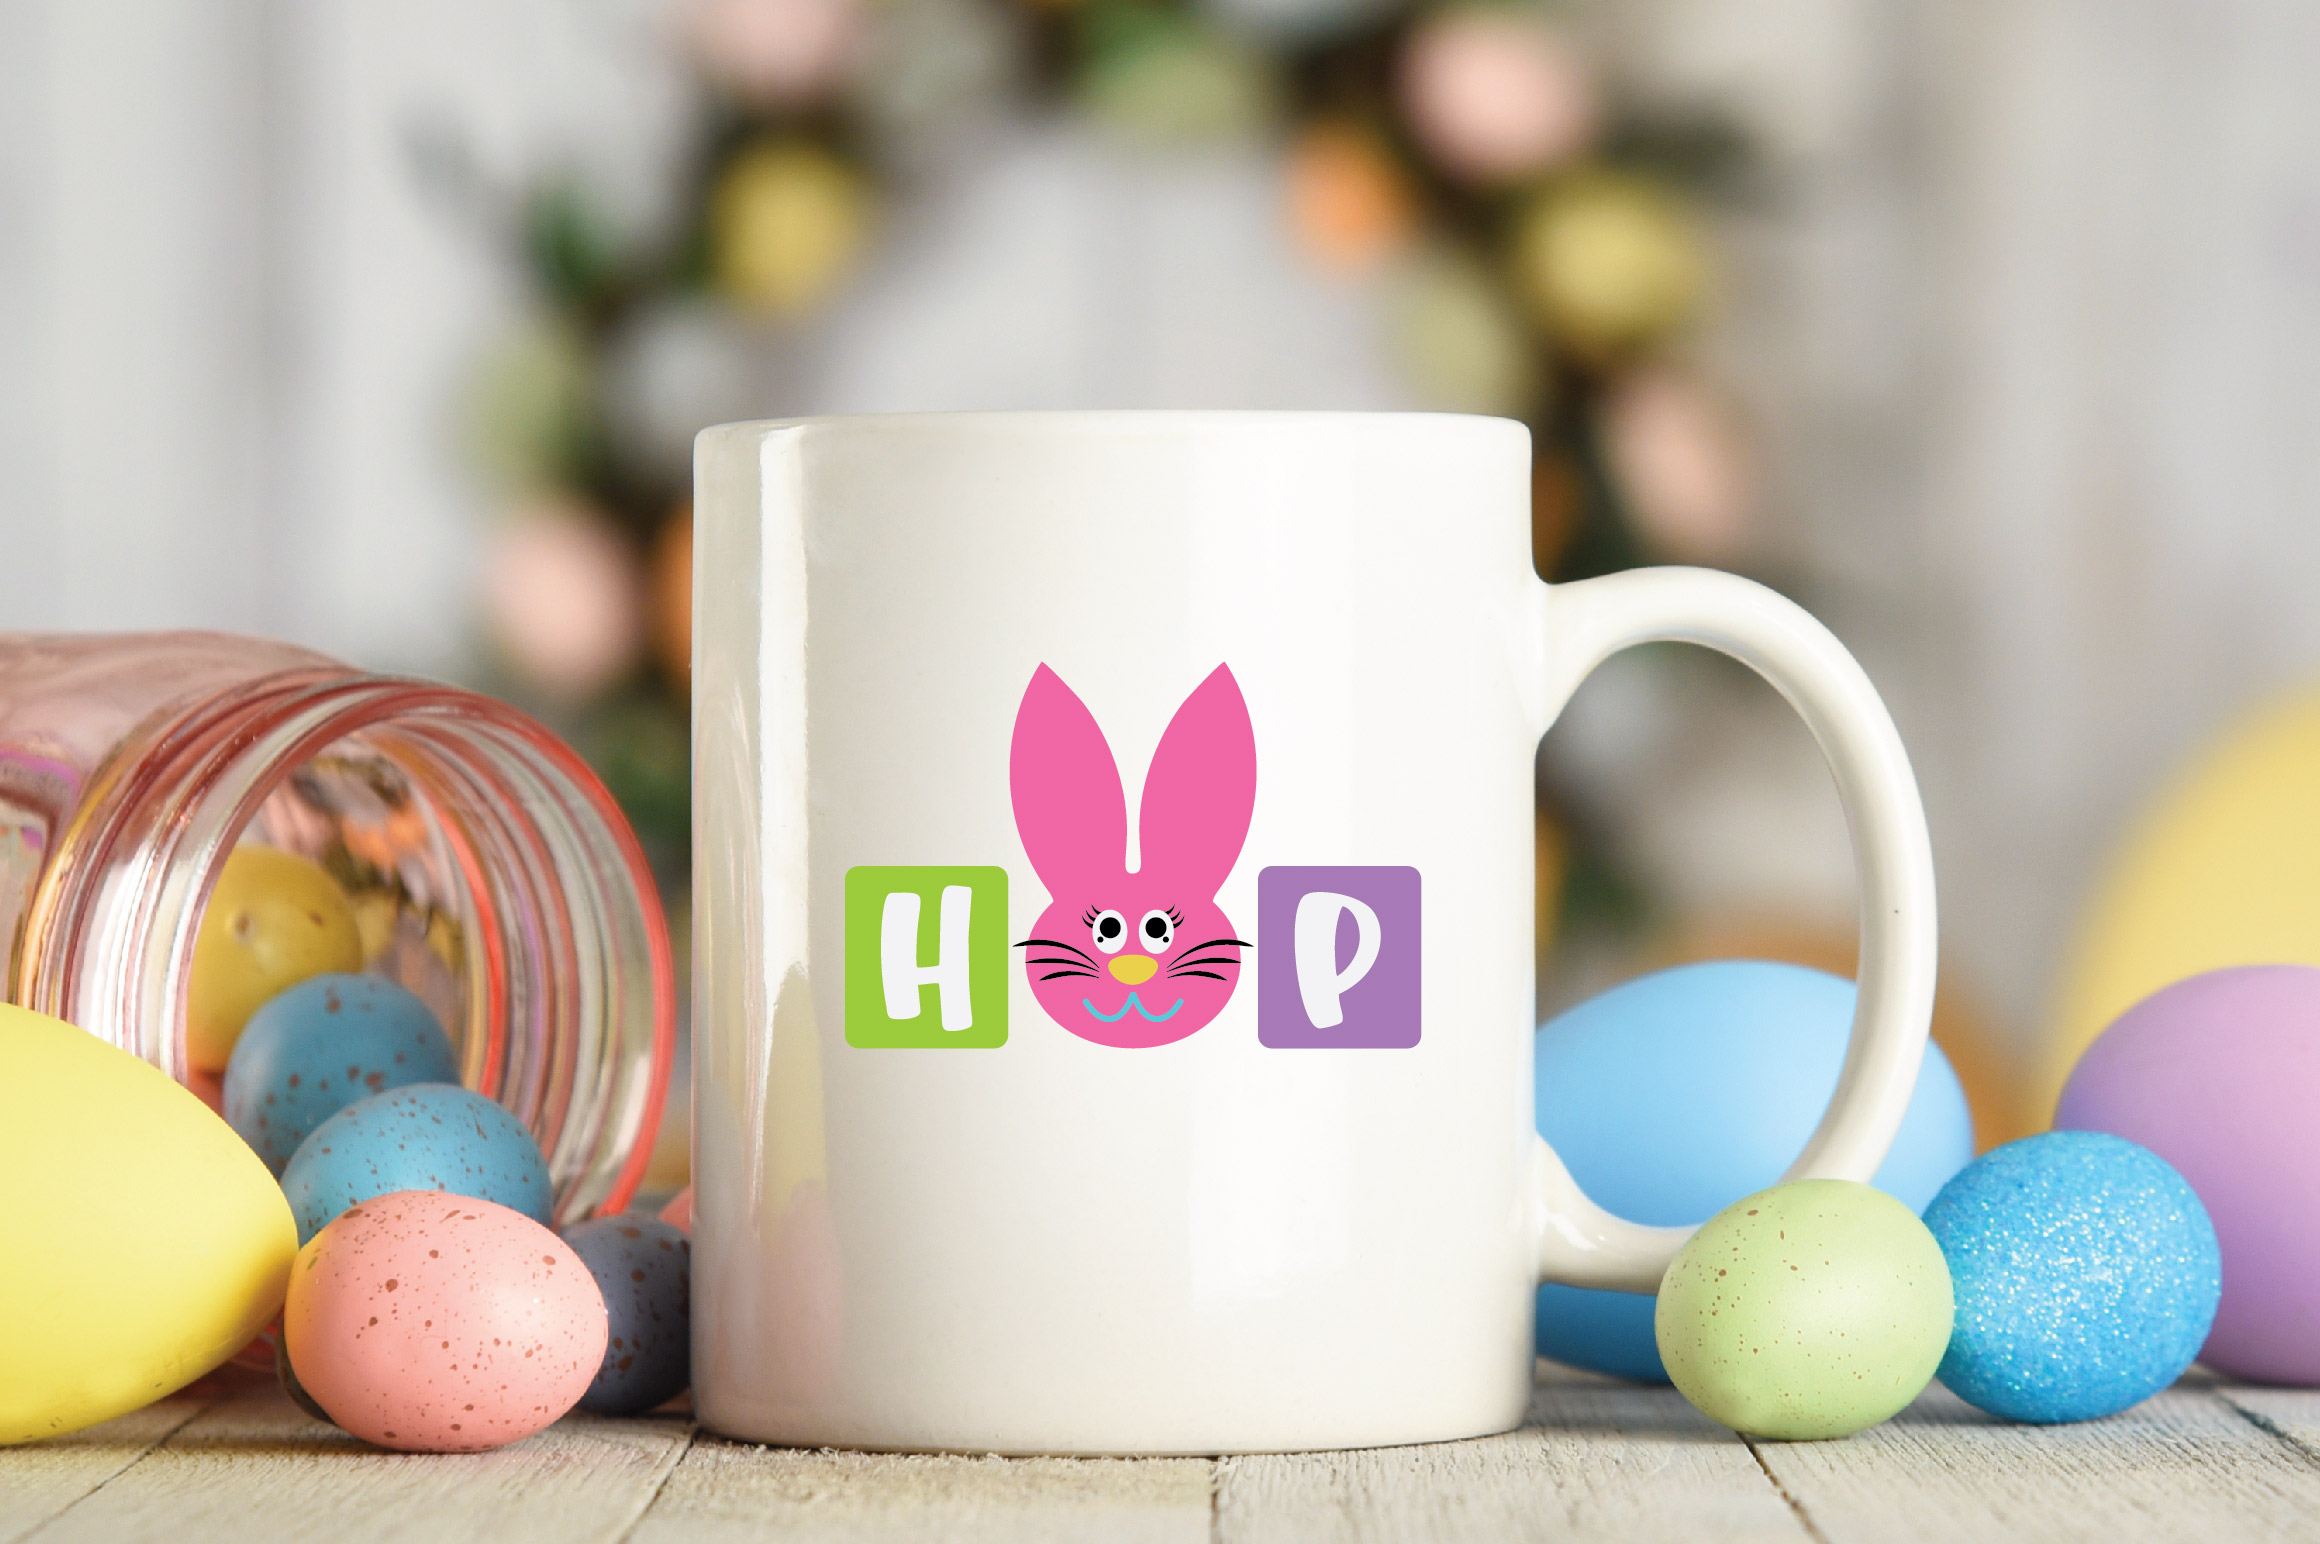 Easter SVG Cut File - Hop SVG DXF EPS PNG AI example image 5